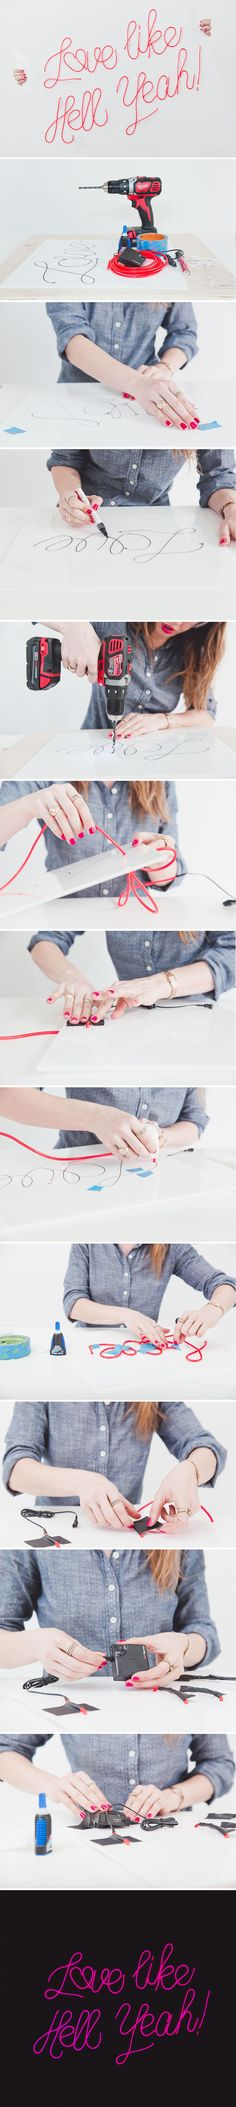 diy neon sign tutorial - awesome!